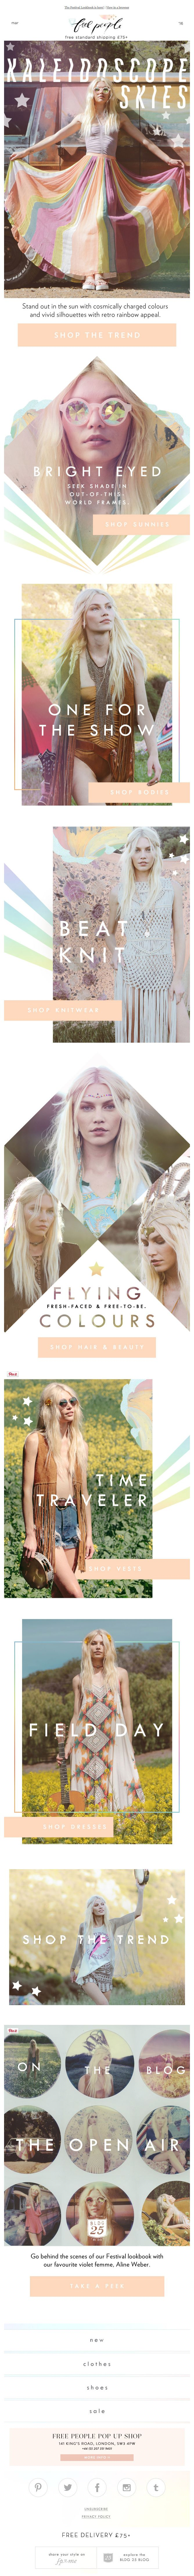 free people - festival email